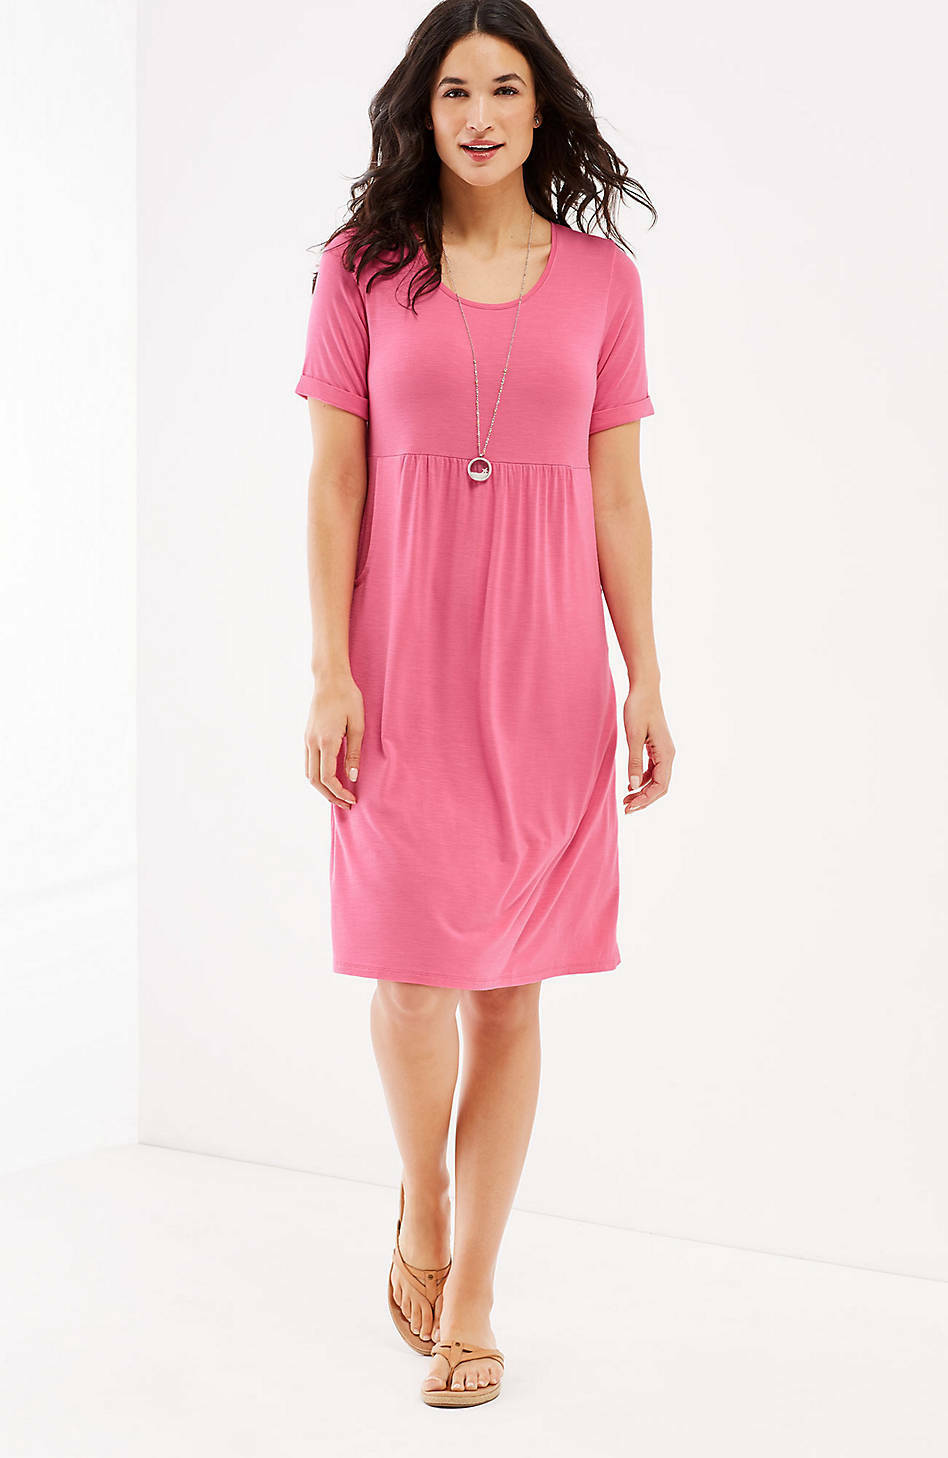 J. Jill - 2X(Plus) - Soft and Comfortable Sweet Pea Scoop-Neck Knit Dress - NWT